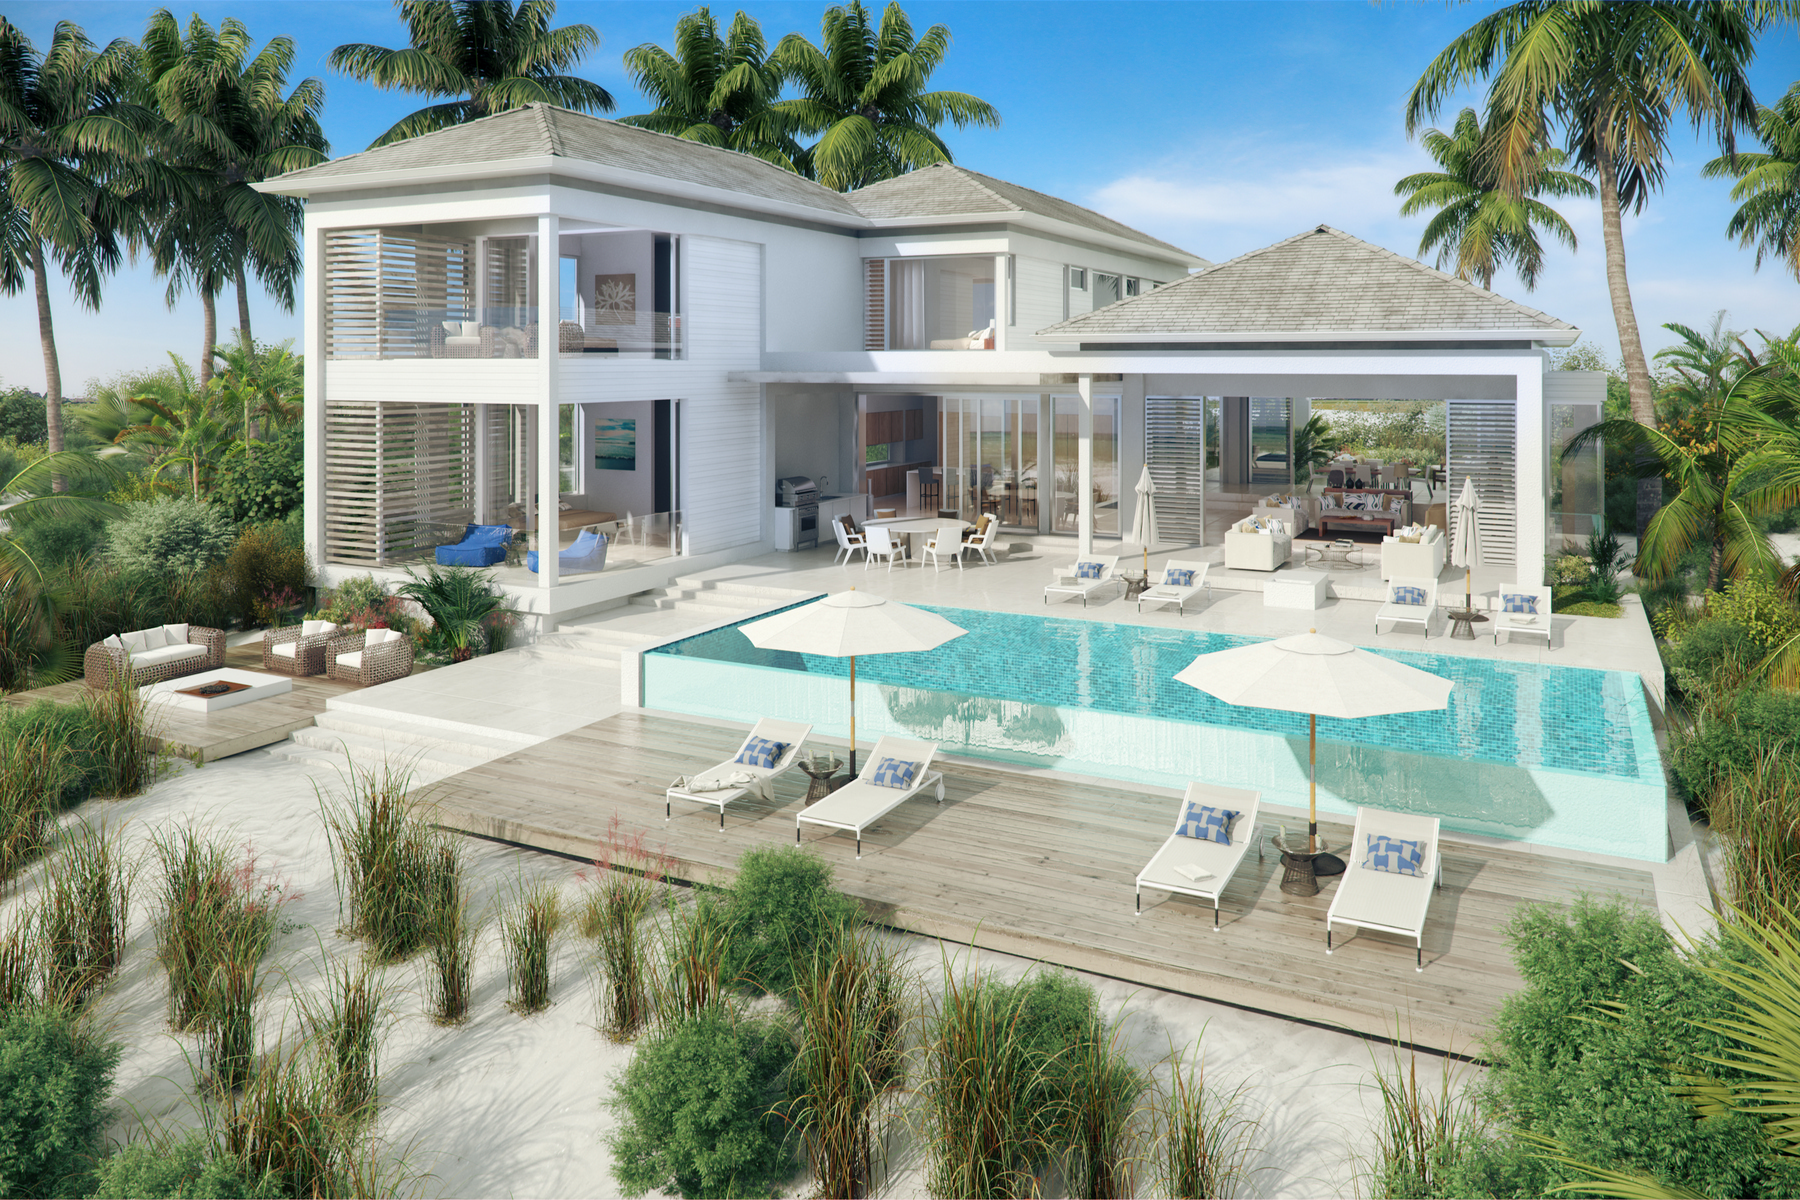 Single Family Home for Sale at BEACH ENCLAVE GRACE BAY Design A Oceanview Grace Bay, TCI Turks And Caicos Islands